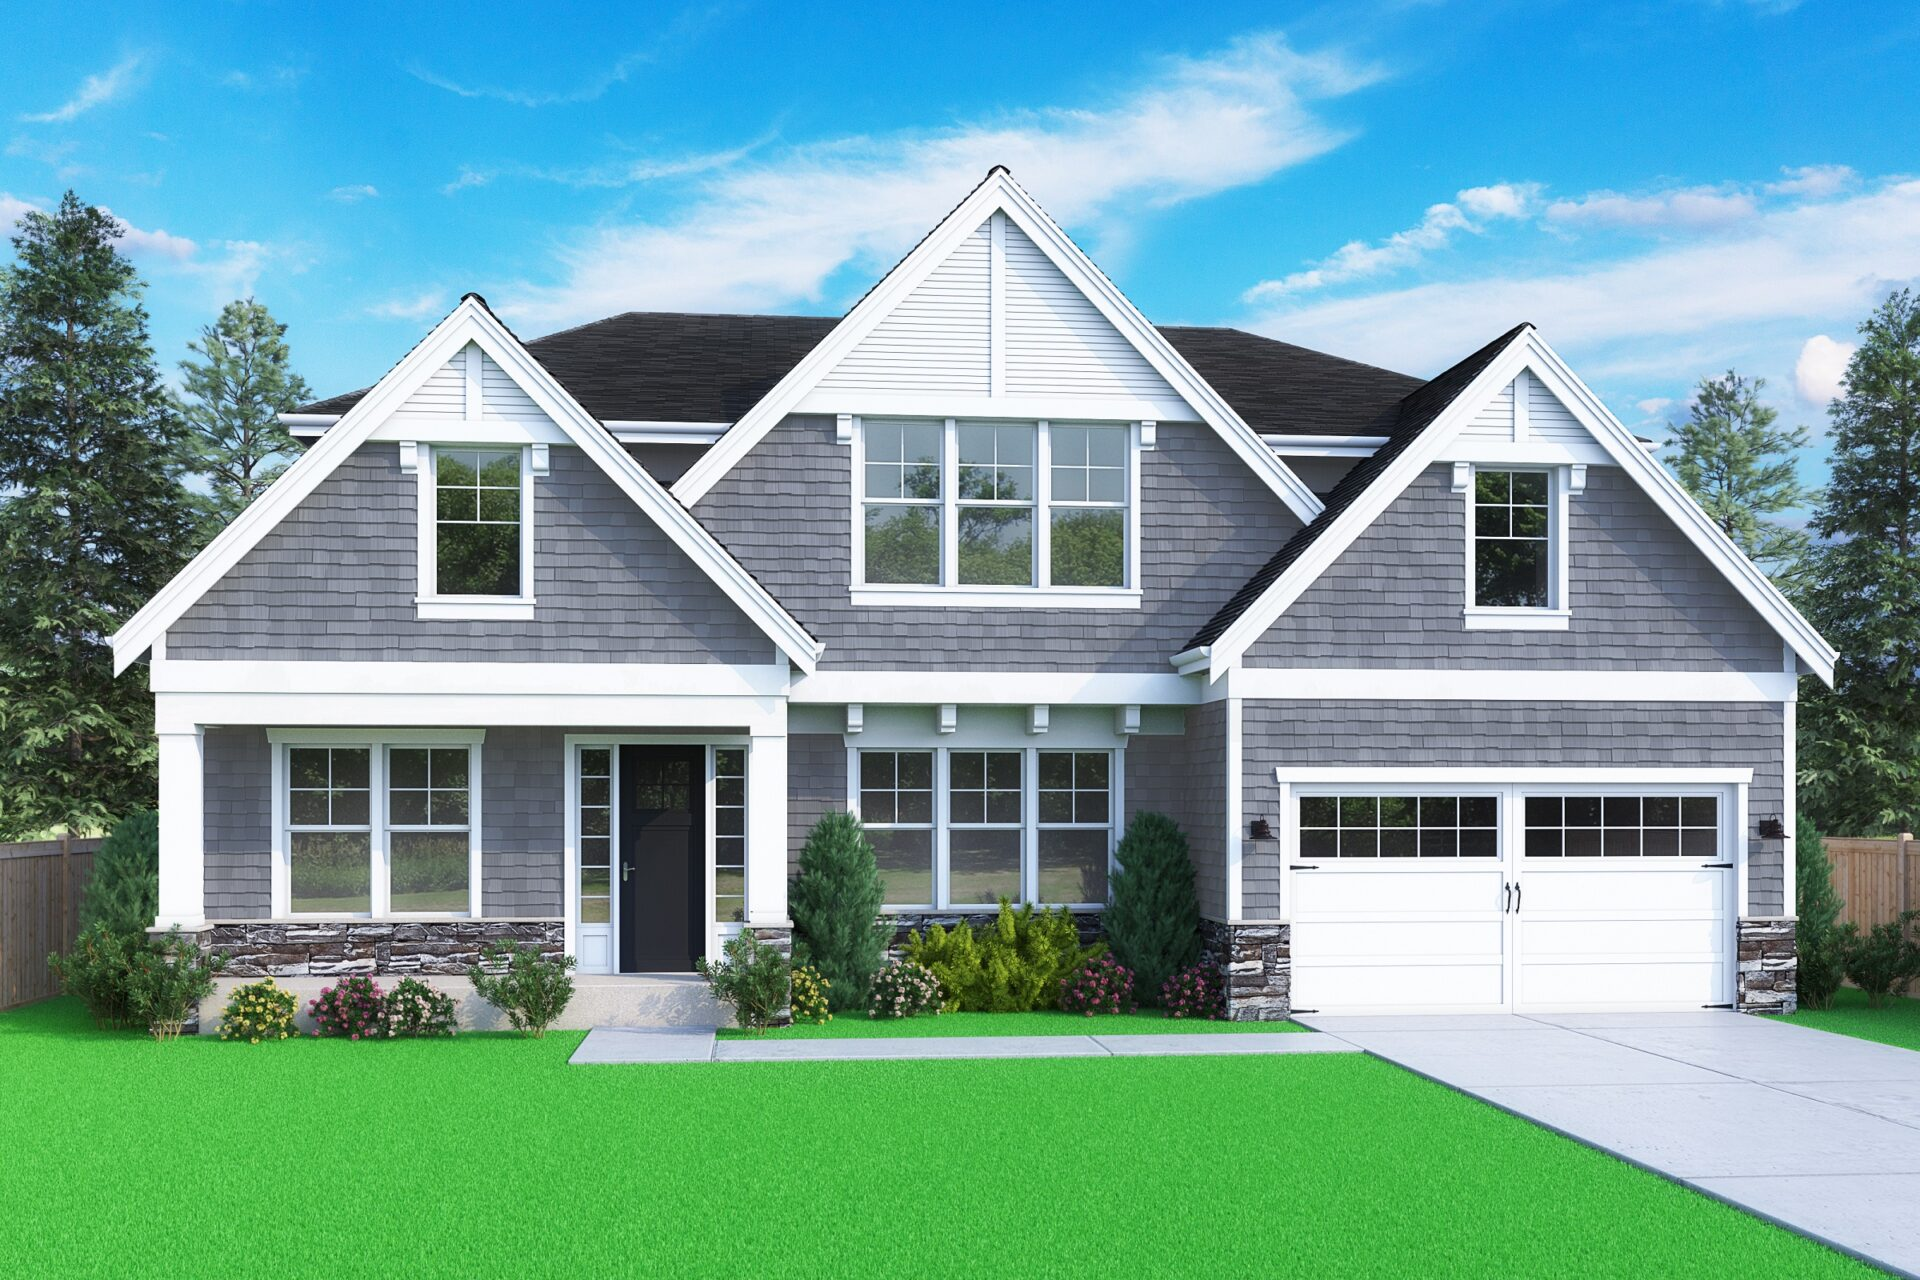 View our new luxury home construction on 1815 154th Ave SE, in Bellevue, WA from MN Custom Homes